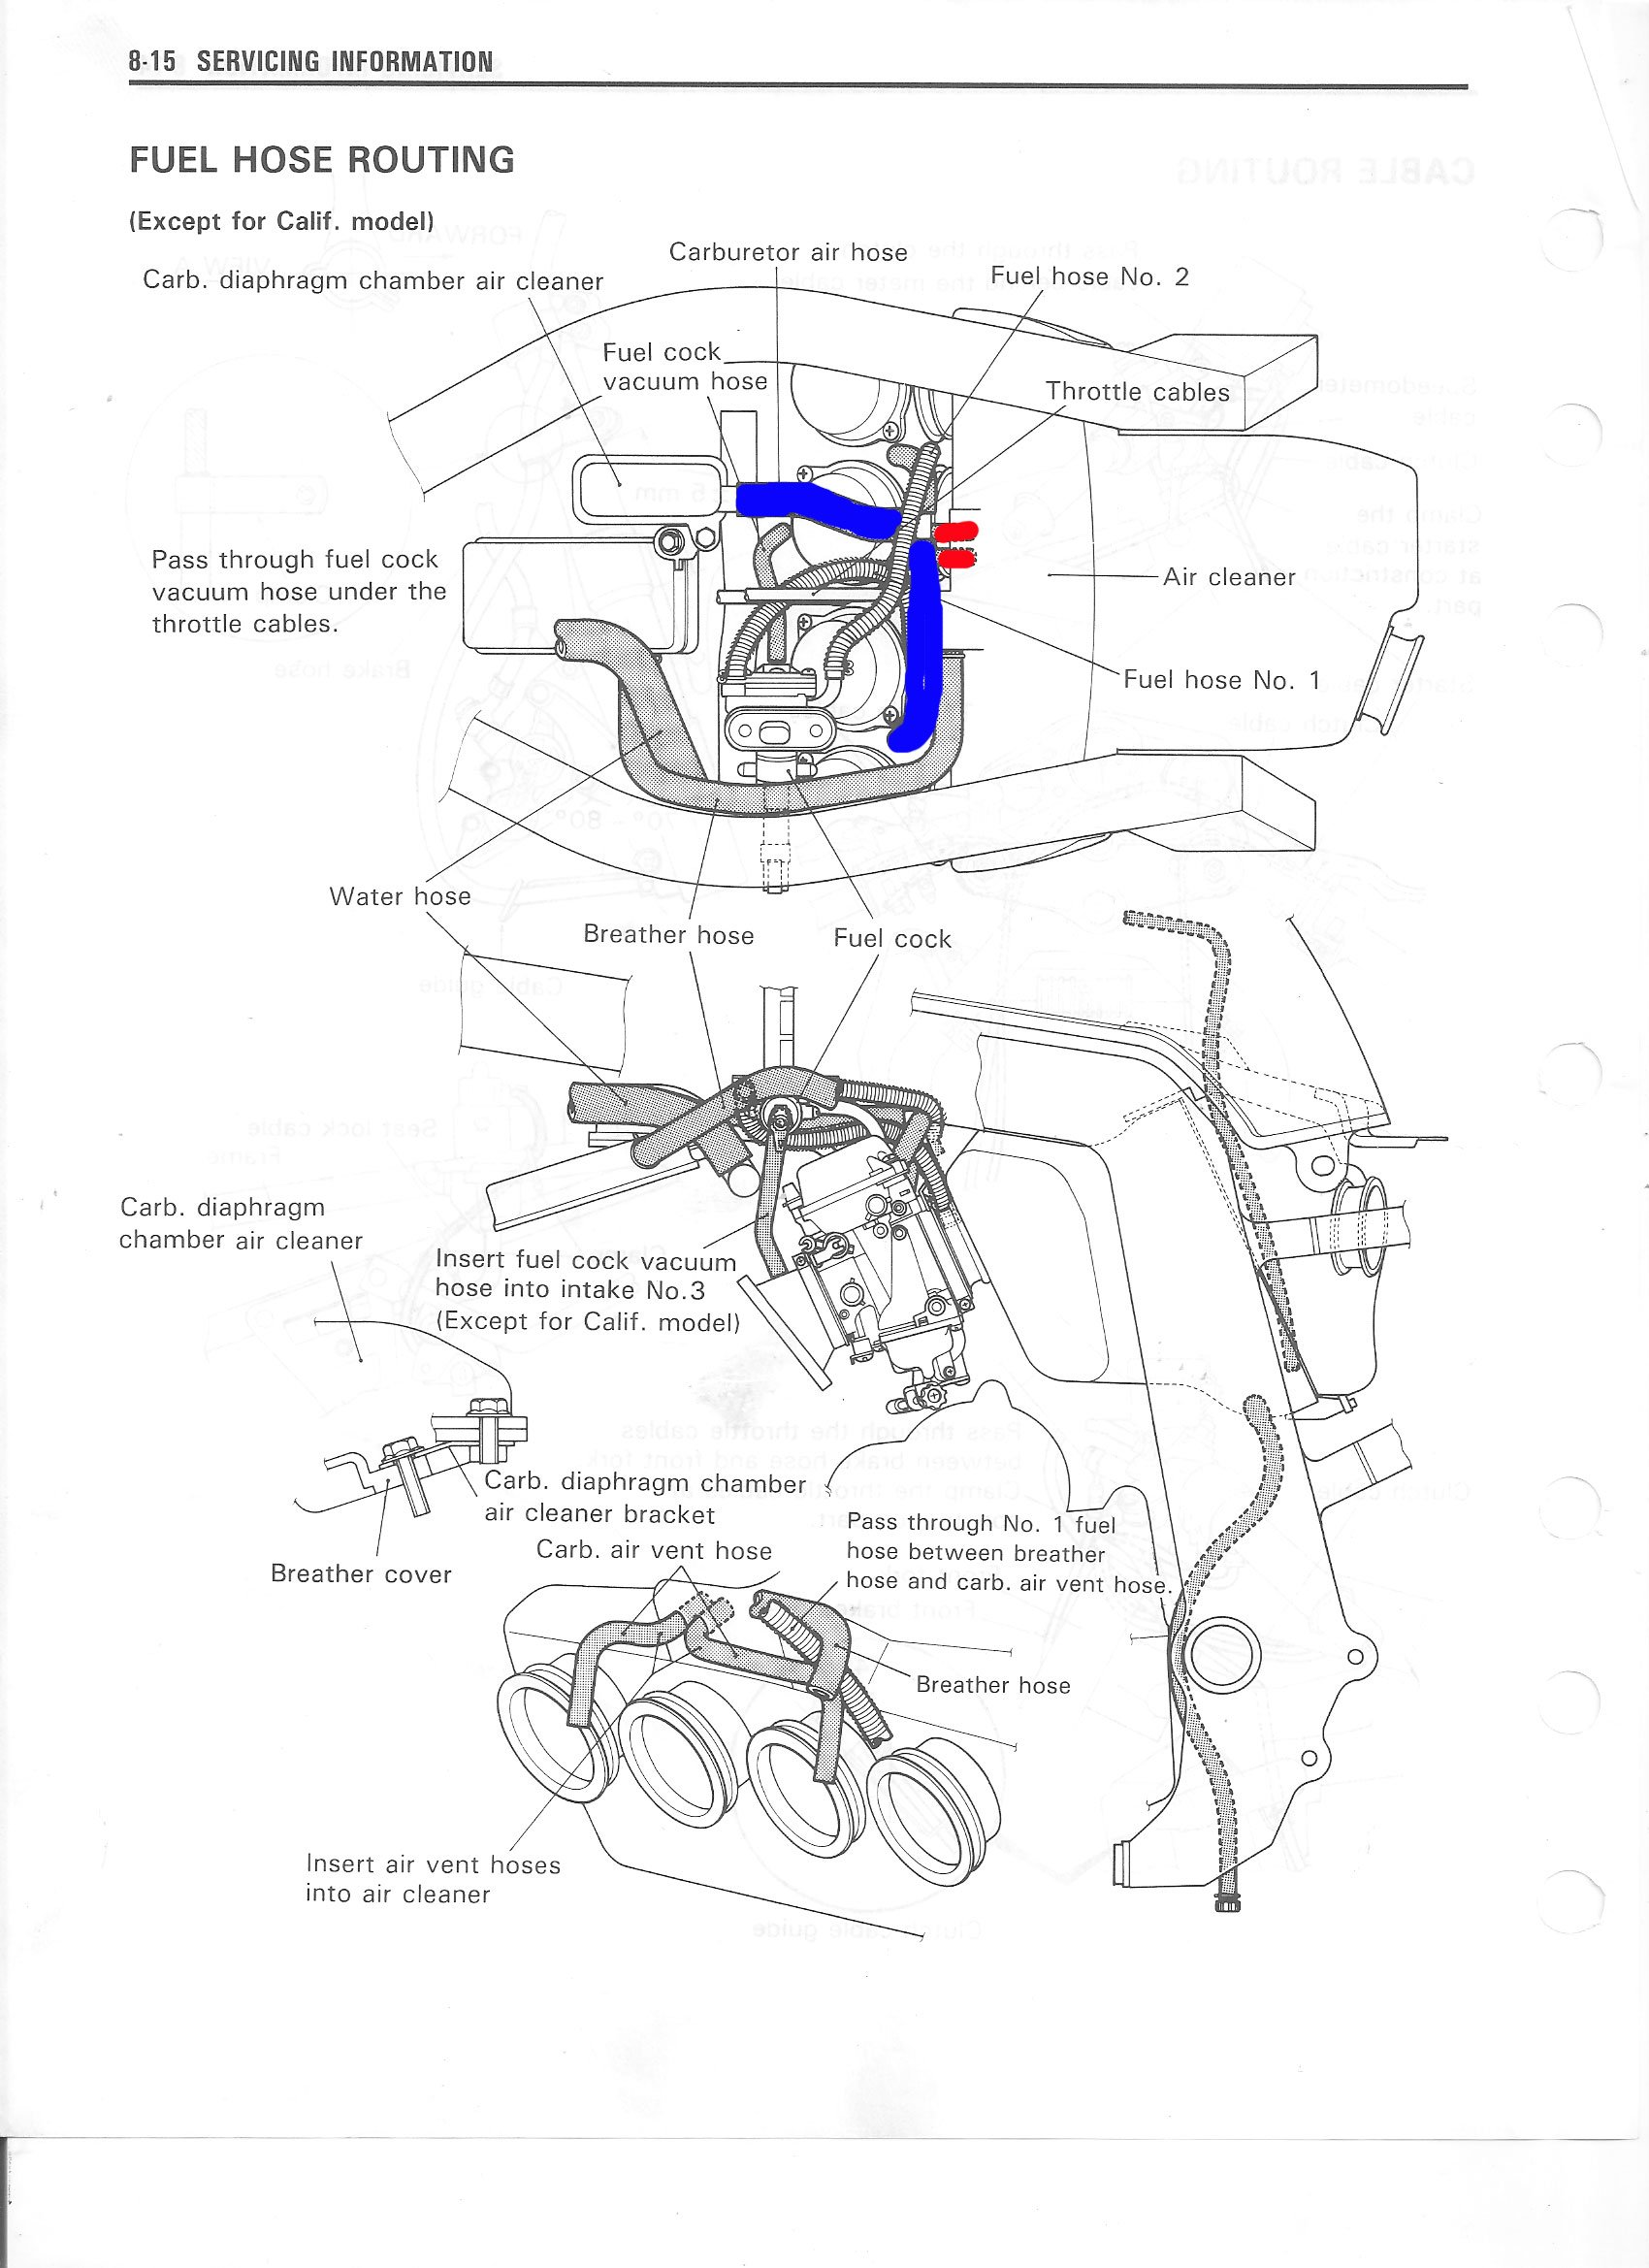 suzuki gsx r 750 fuel line routing diagram  suzuki  auto